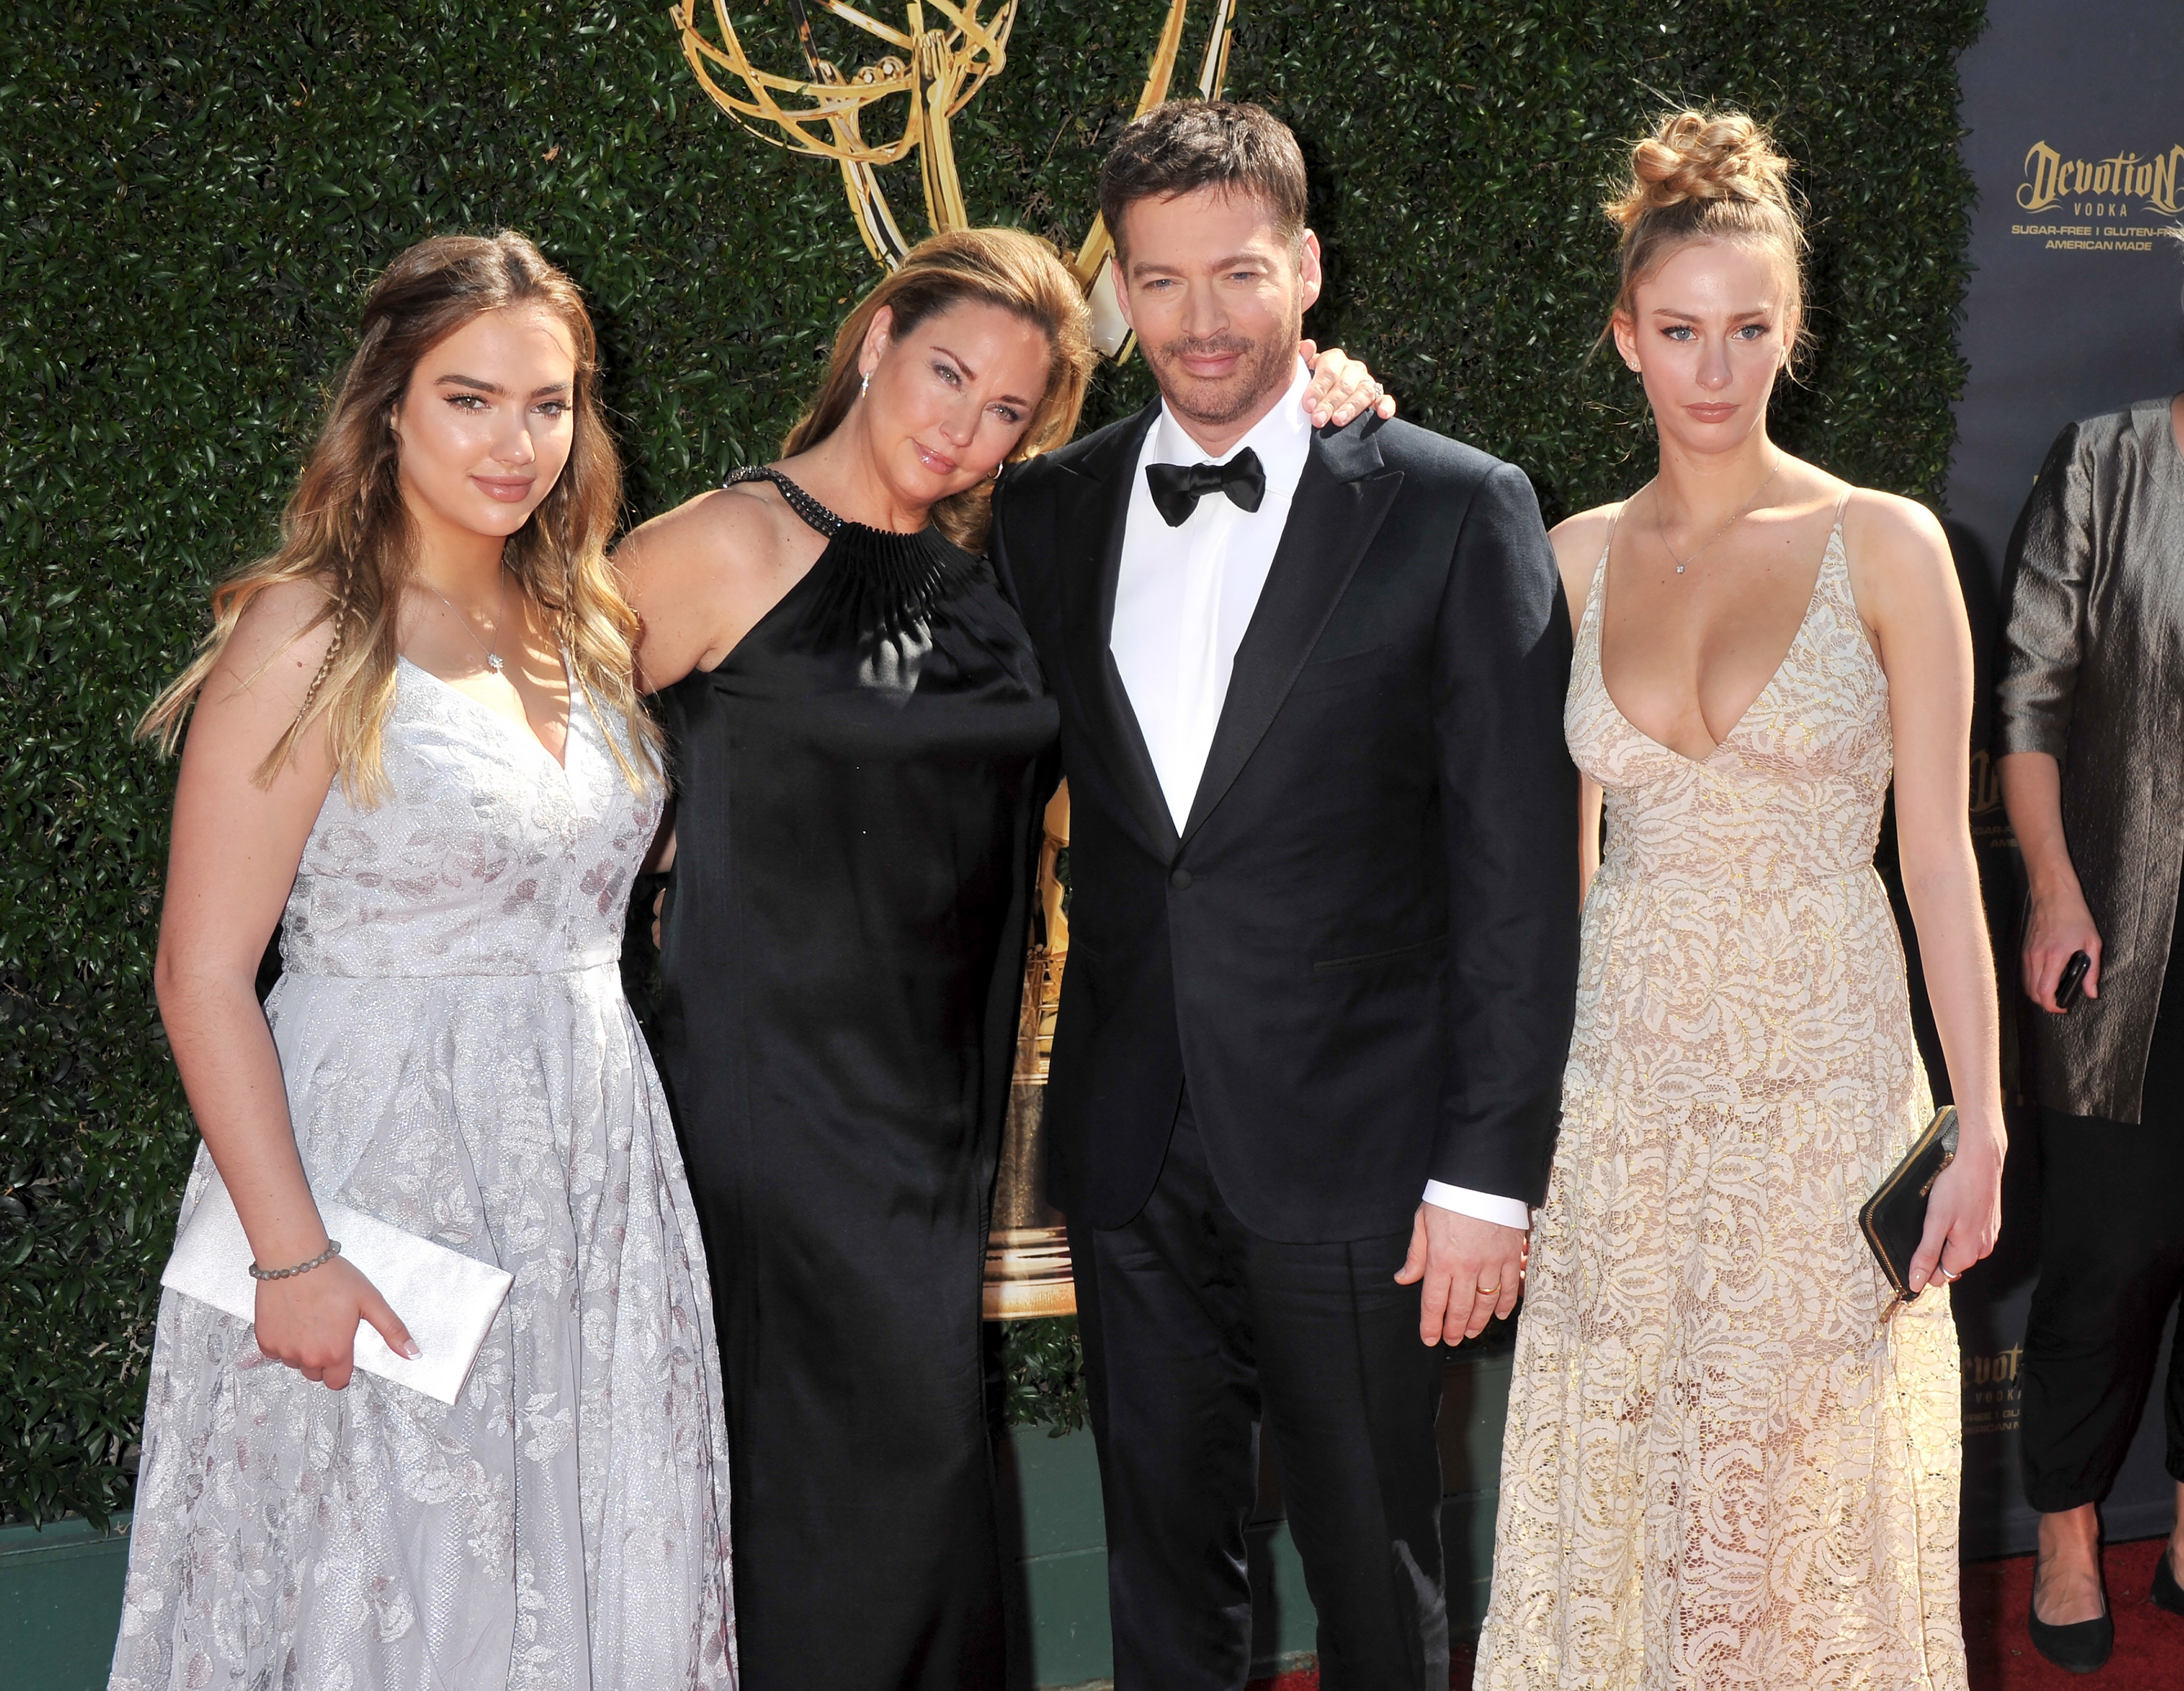 Harry Connick, Jr., wife Jill Goodacre and daughters arrive at the 44th Annual Daytime Emmy Awards at Pasadena Civic Auditorium | Photos :getty images